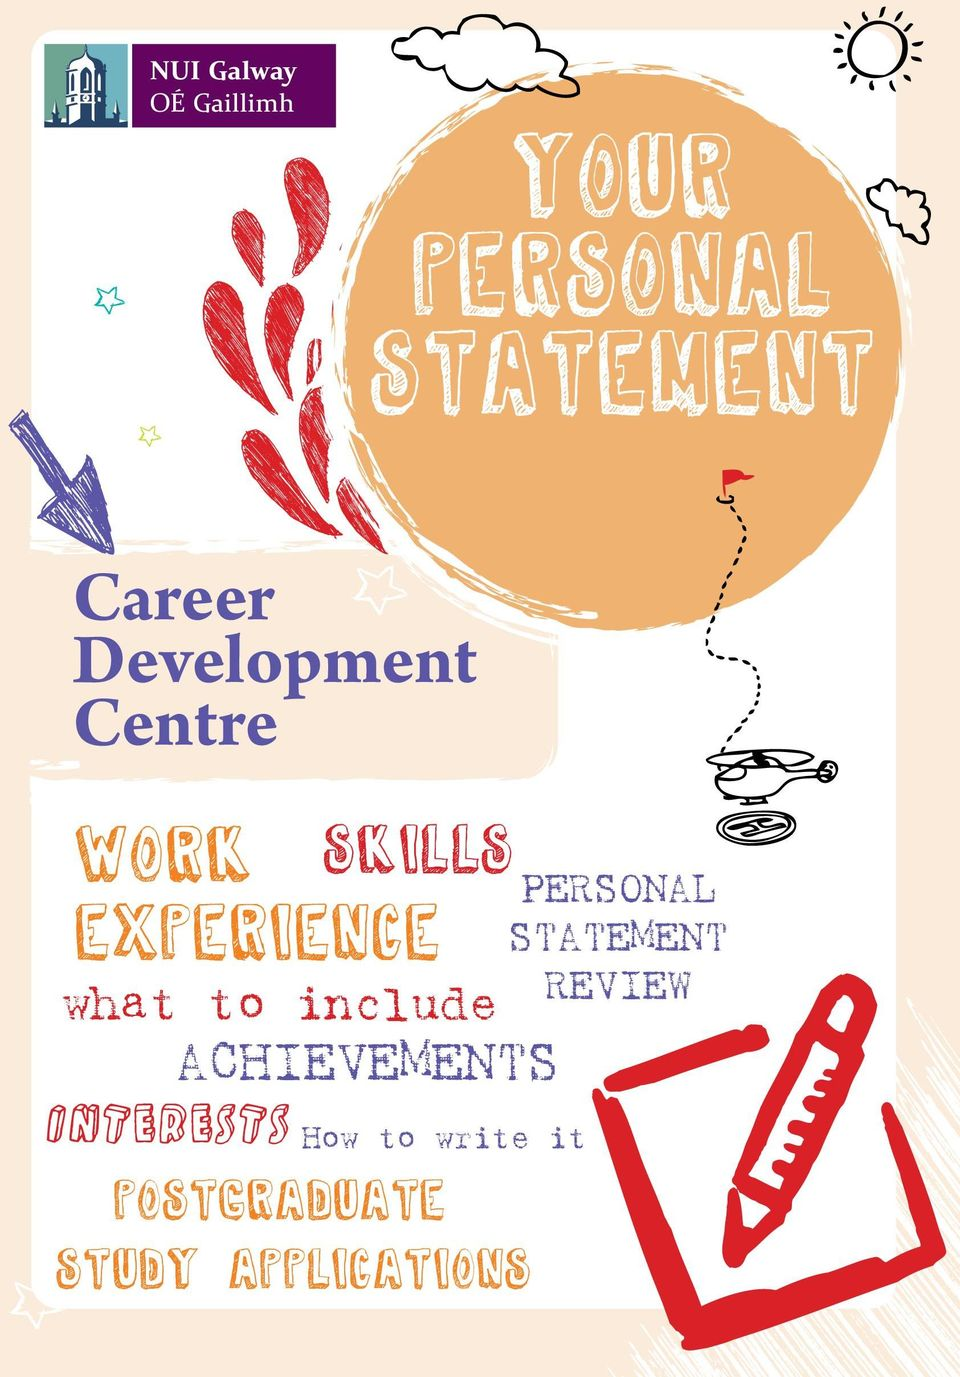 ACHIEVEMENTS PERSONAL STATEMENT REVIEW